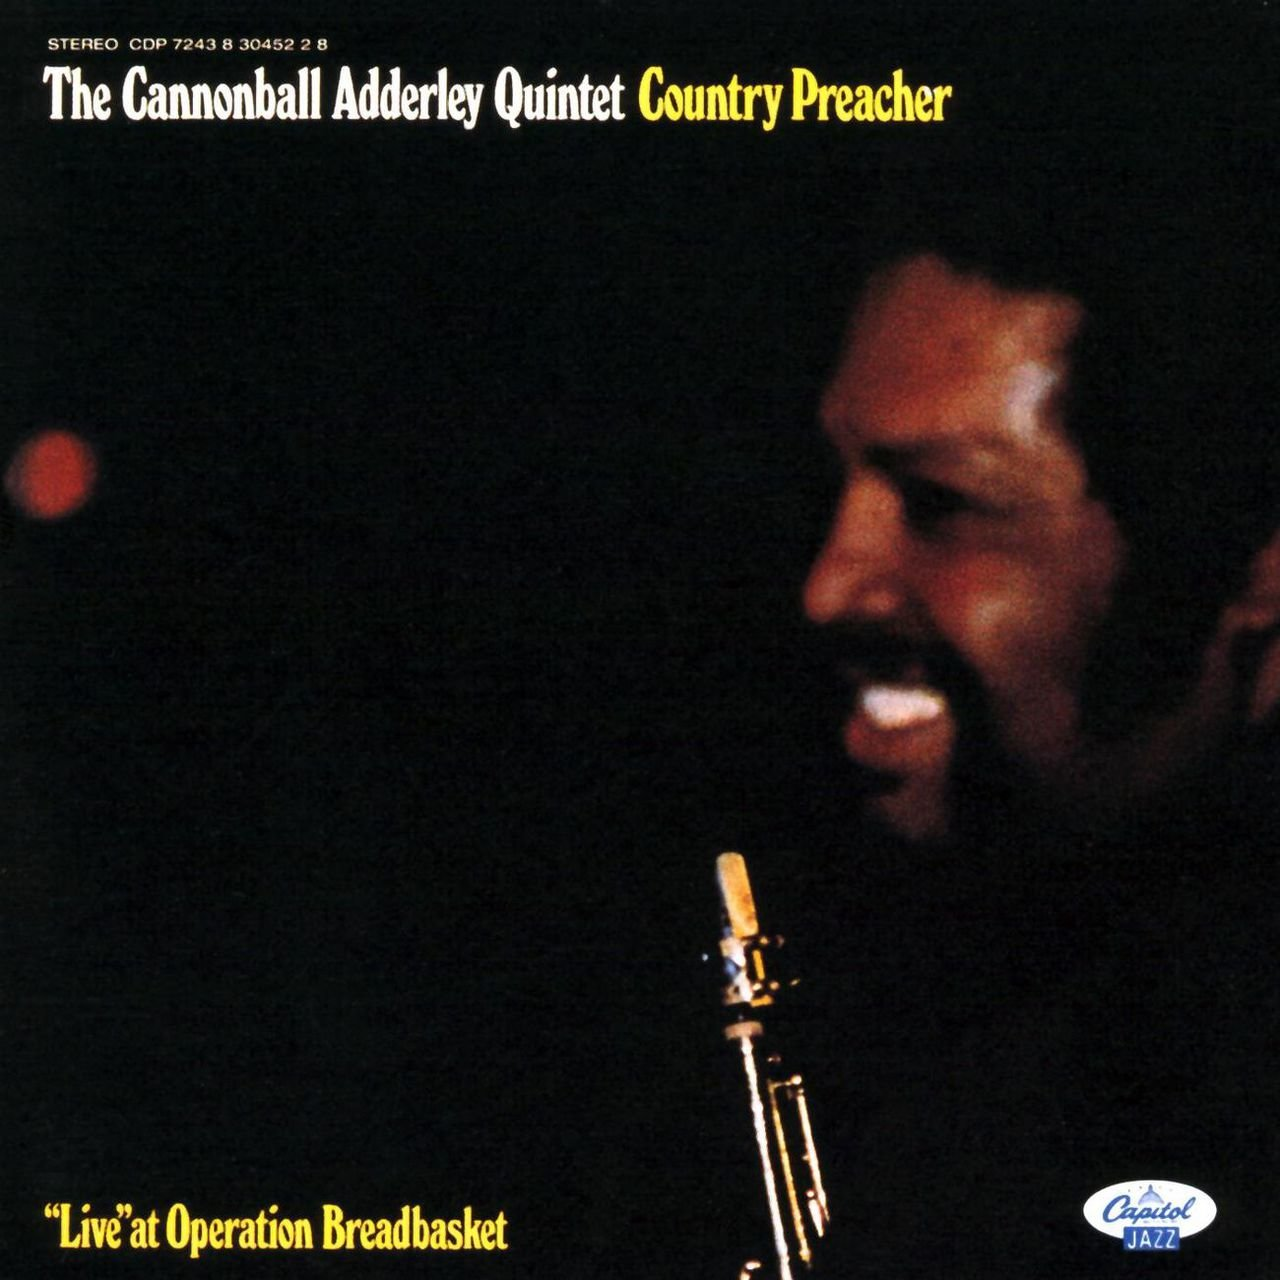 Adderley_Cannoball_Quintet_CountryPreacher.jpg